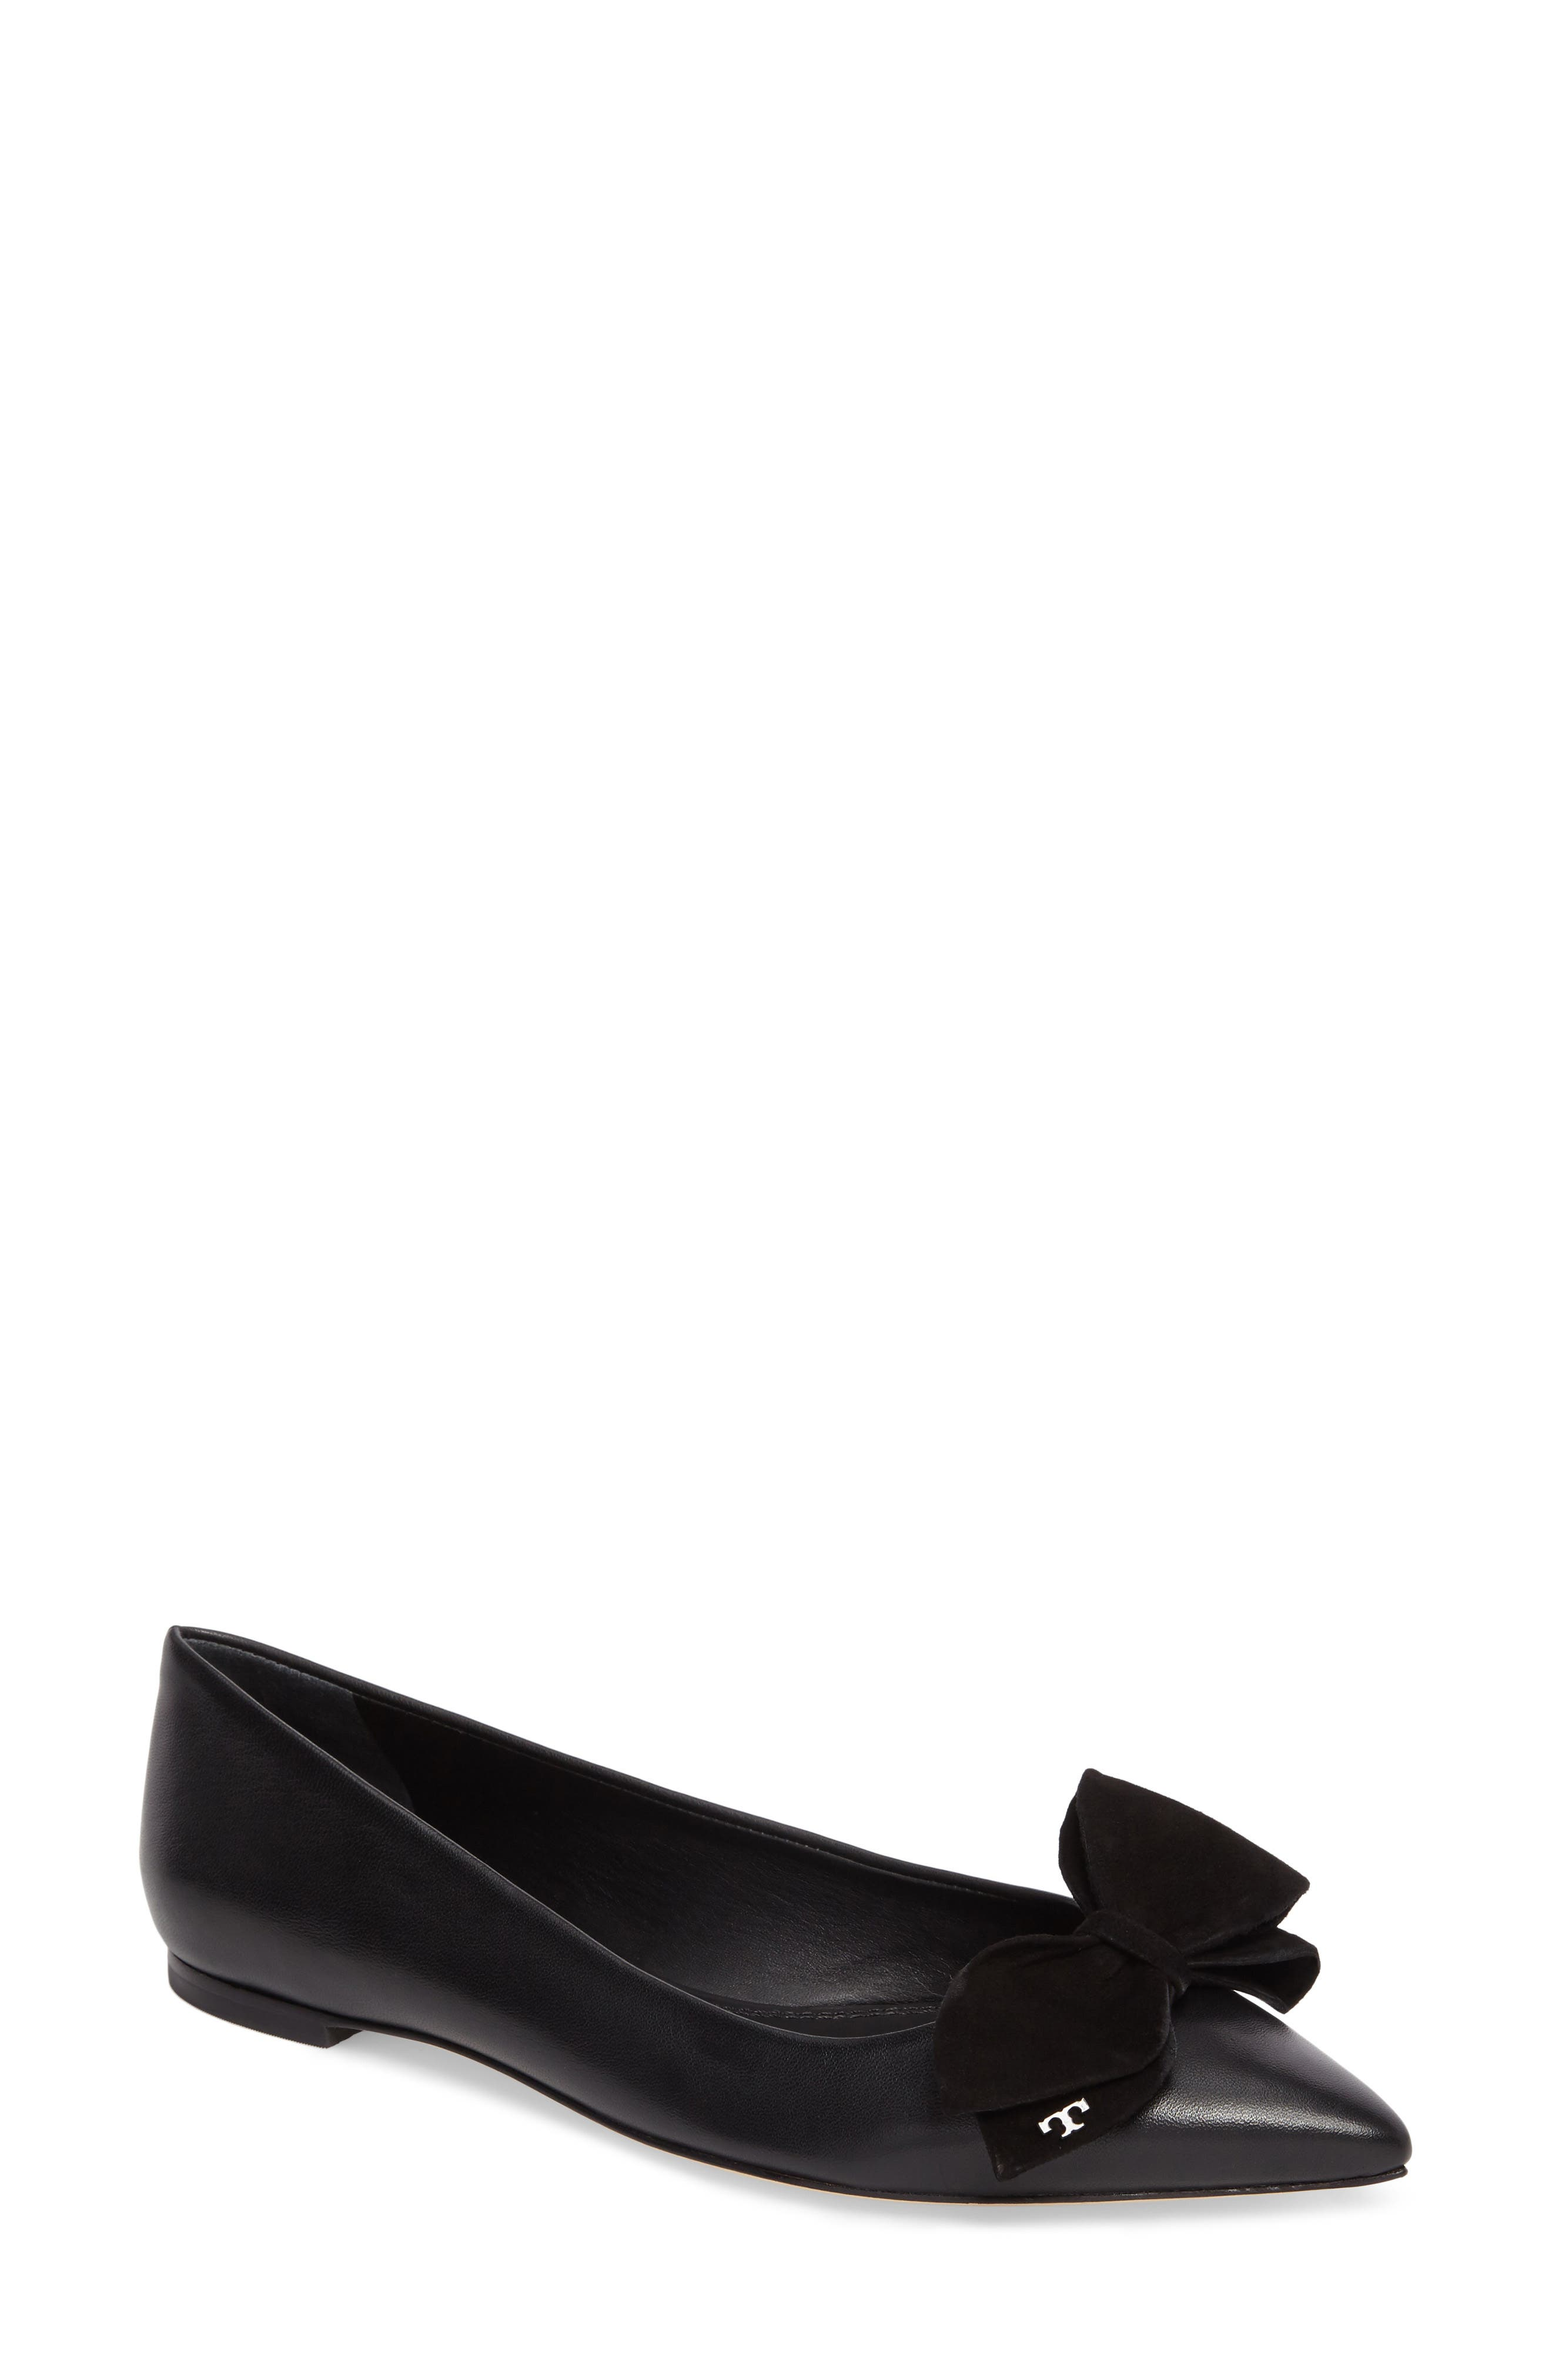 Alternate Image 1 Selected - Tory Burch Rosalind Bow Pointy Toe Flat (Women)